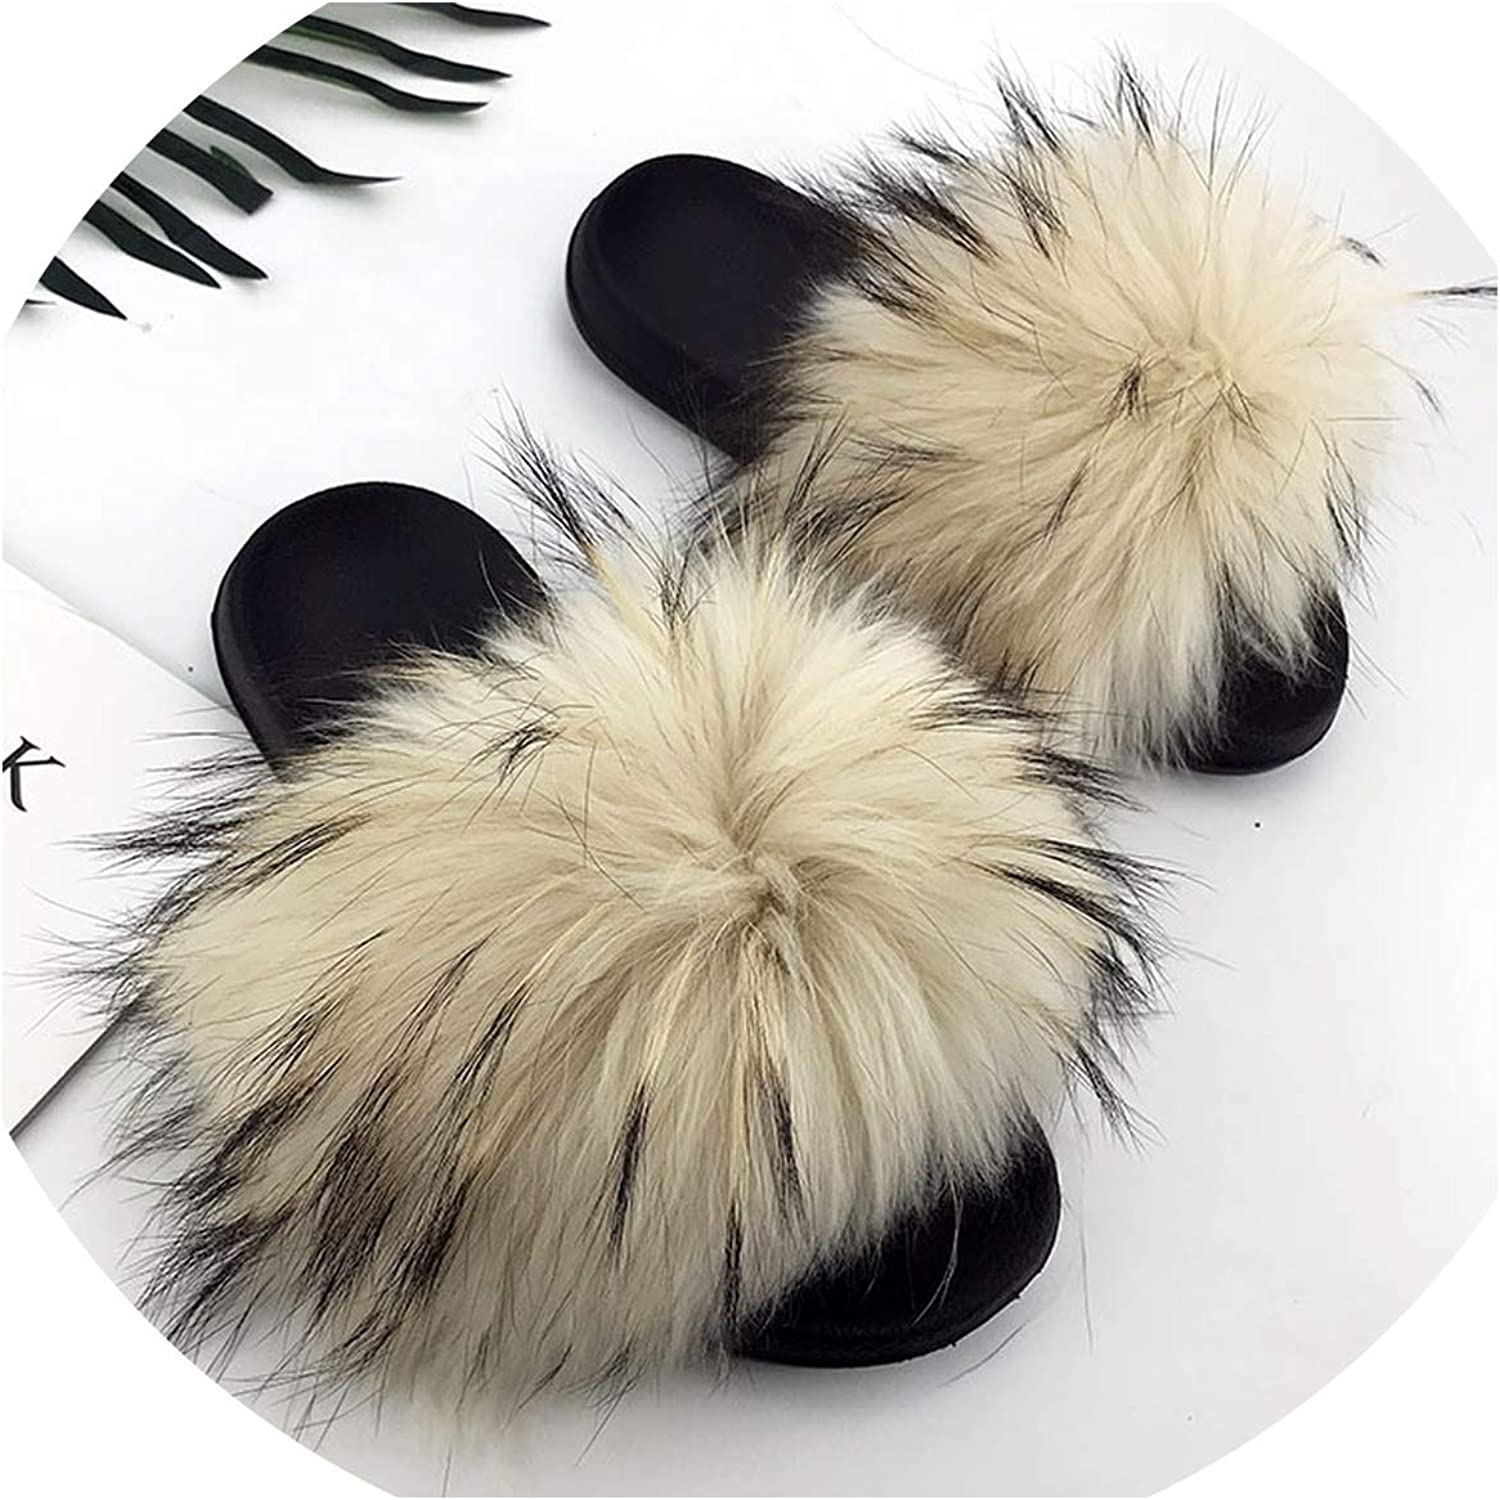 Just XiaoZhouZhou 28 colors Real Fur Slippers Women Fox Fluffy Sliders Comfort with Feathers Furry Summer Flats Sweet Ladies shoes Plus Size 36-45,12,10.5